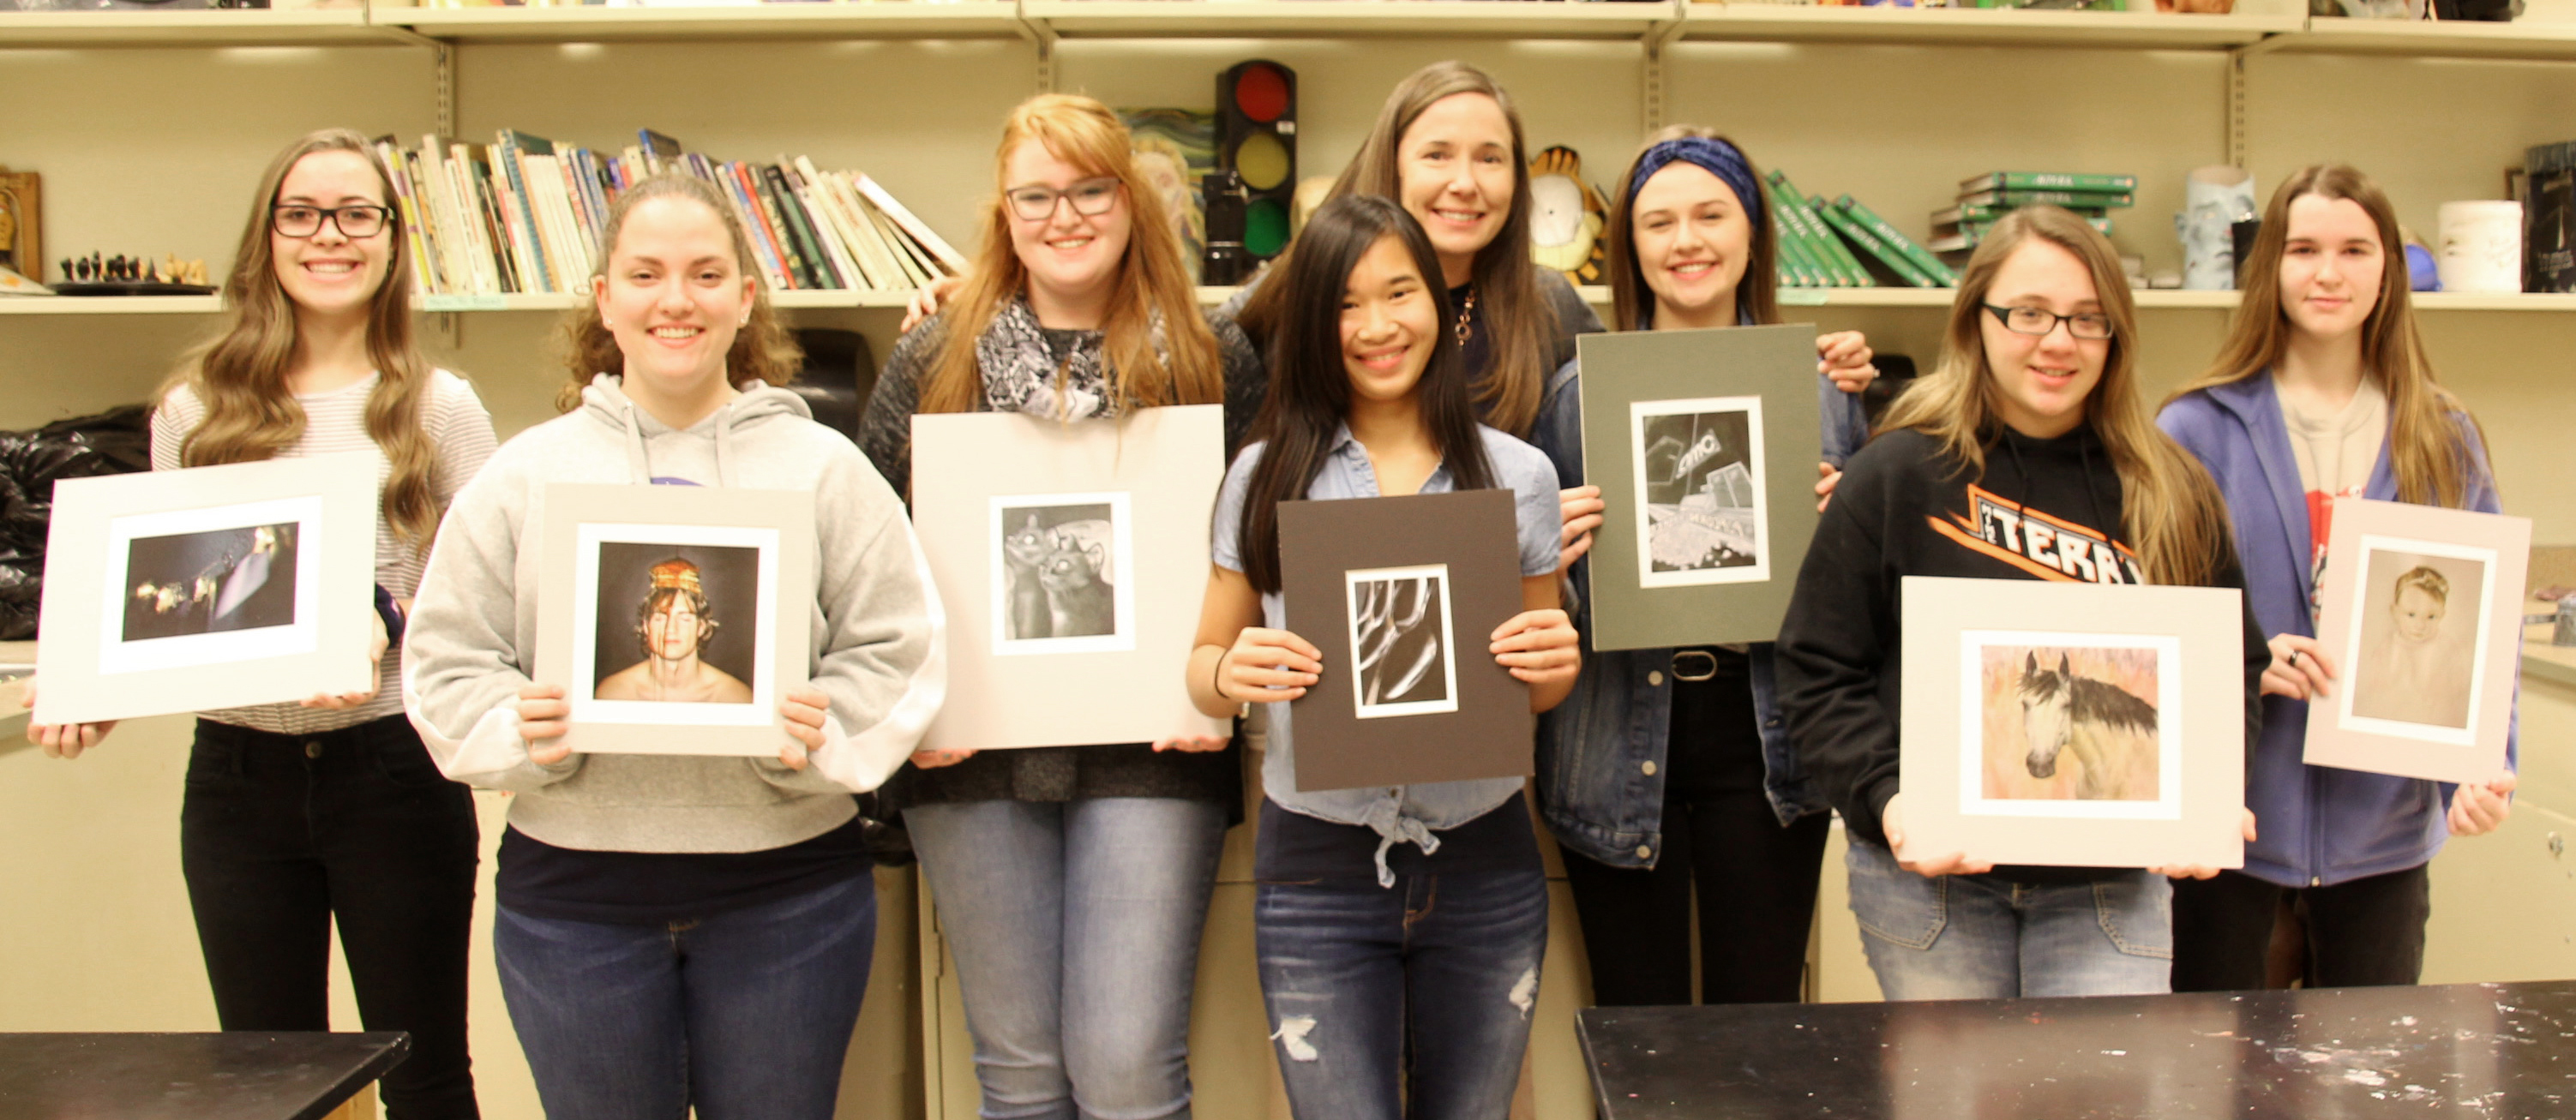 PHS art students featured here with Mrs. Armstrong, after winning prestigious awards for their artwork. Congratulations!